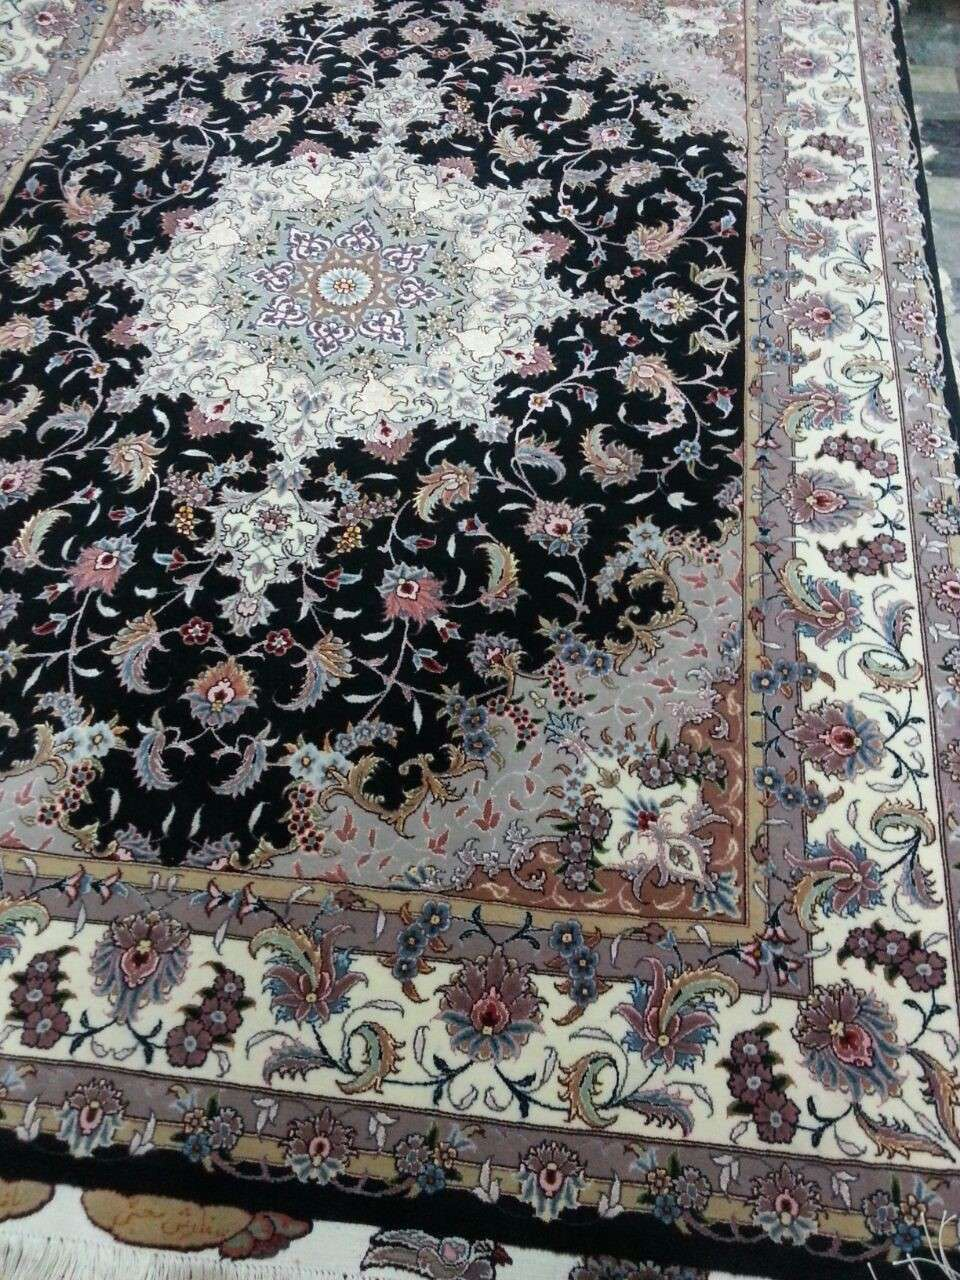 Master Taghizadeh -Hand Knotted Tabriz Persian Tabriz Carpet/Rug